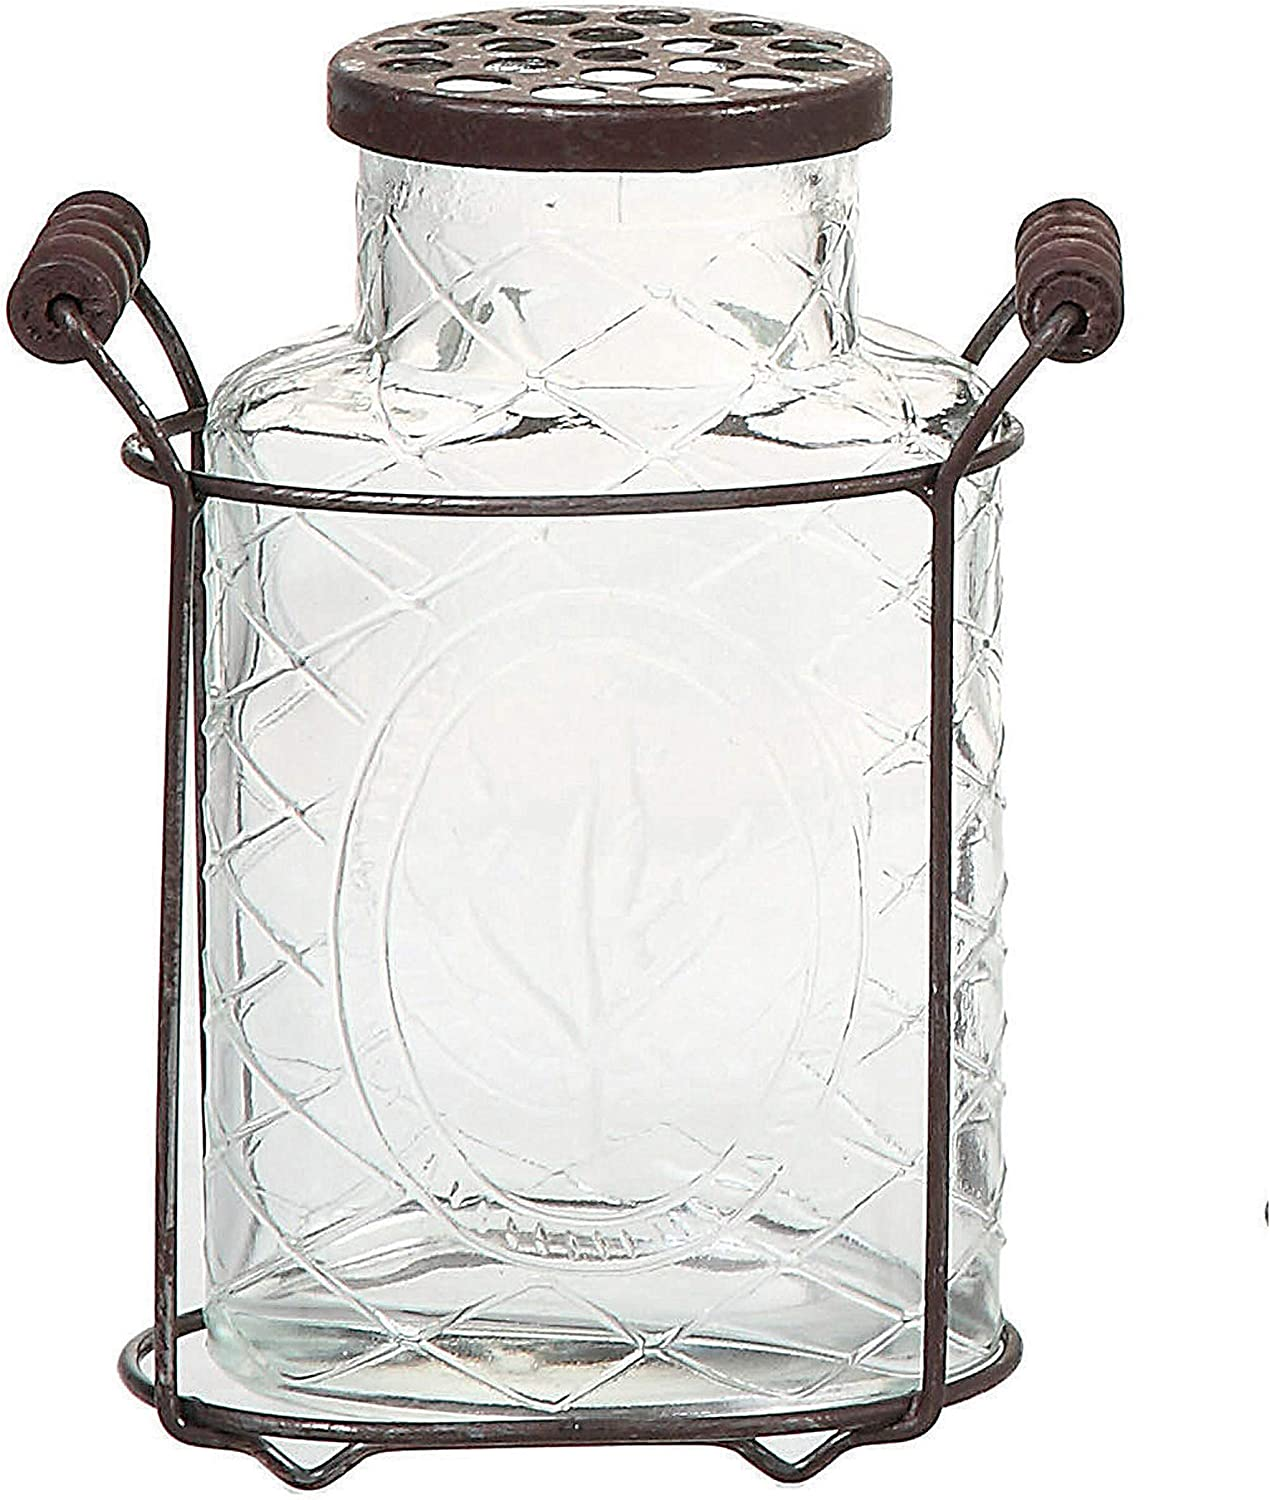 Creative Co-Op Glass Vase with Metal Flower Lid Large